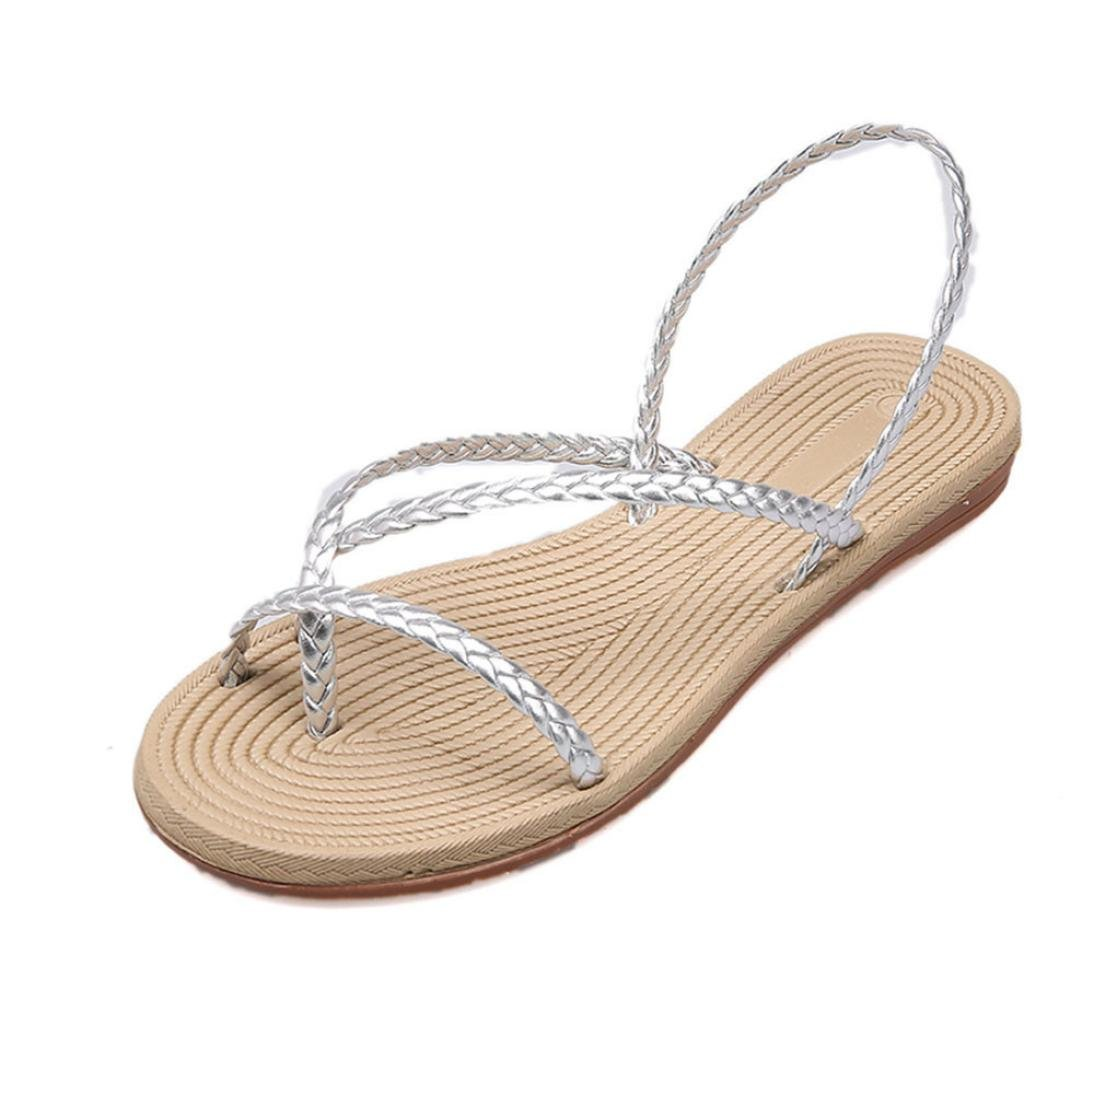 SHY Women Sandals, Flip-Flop Bohemia Summer Bandages Sandal Pumps Slippers Wedge Platform Slippers B07BRK6G7M US:5.5 (36)|Silver